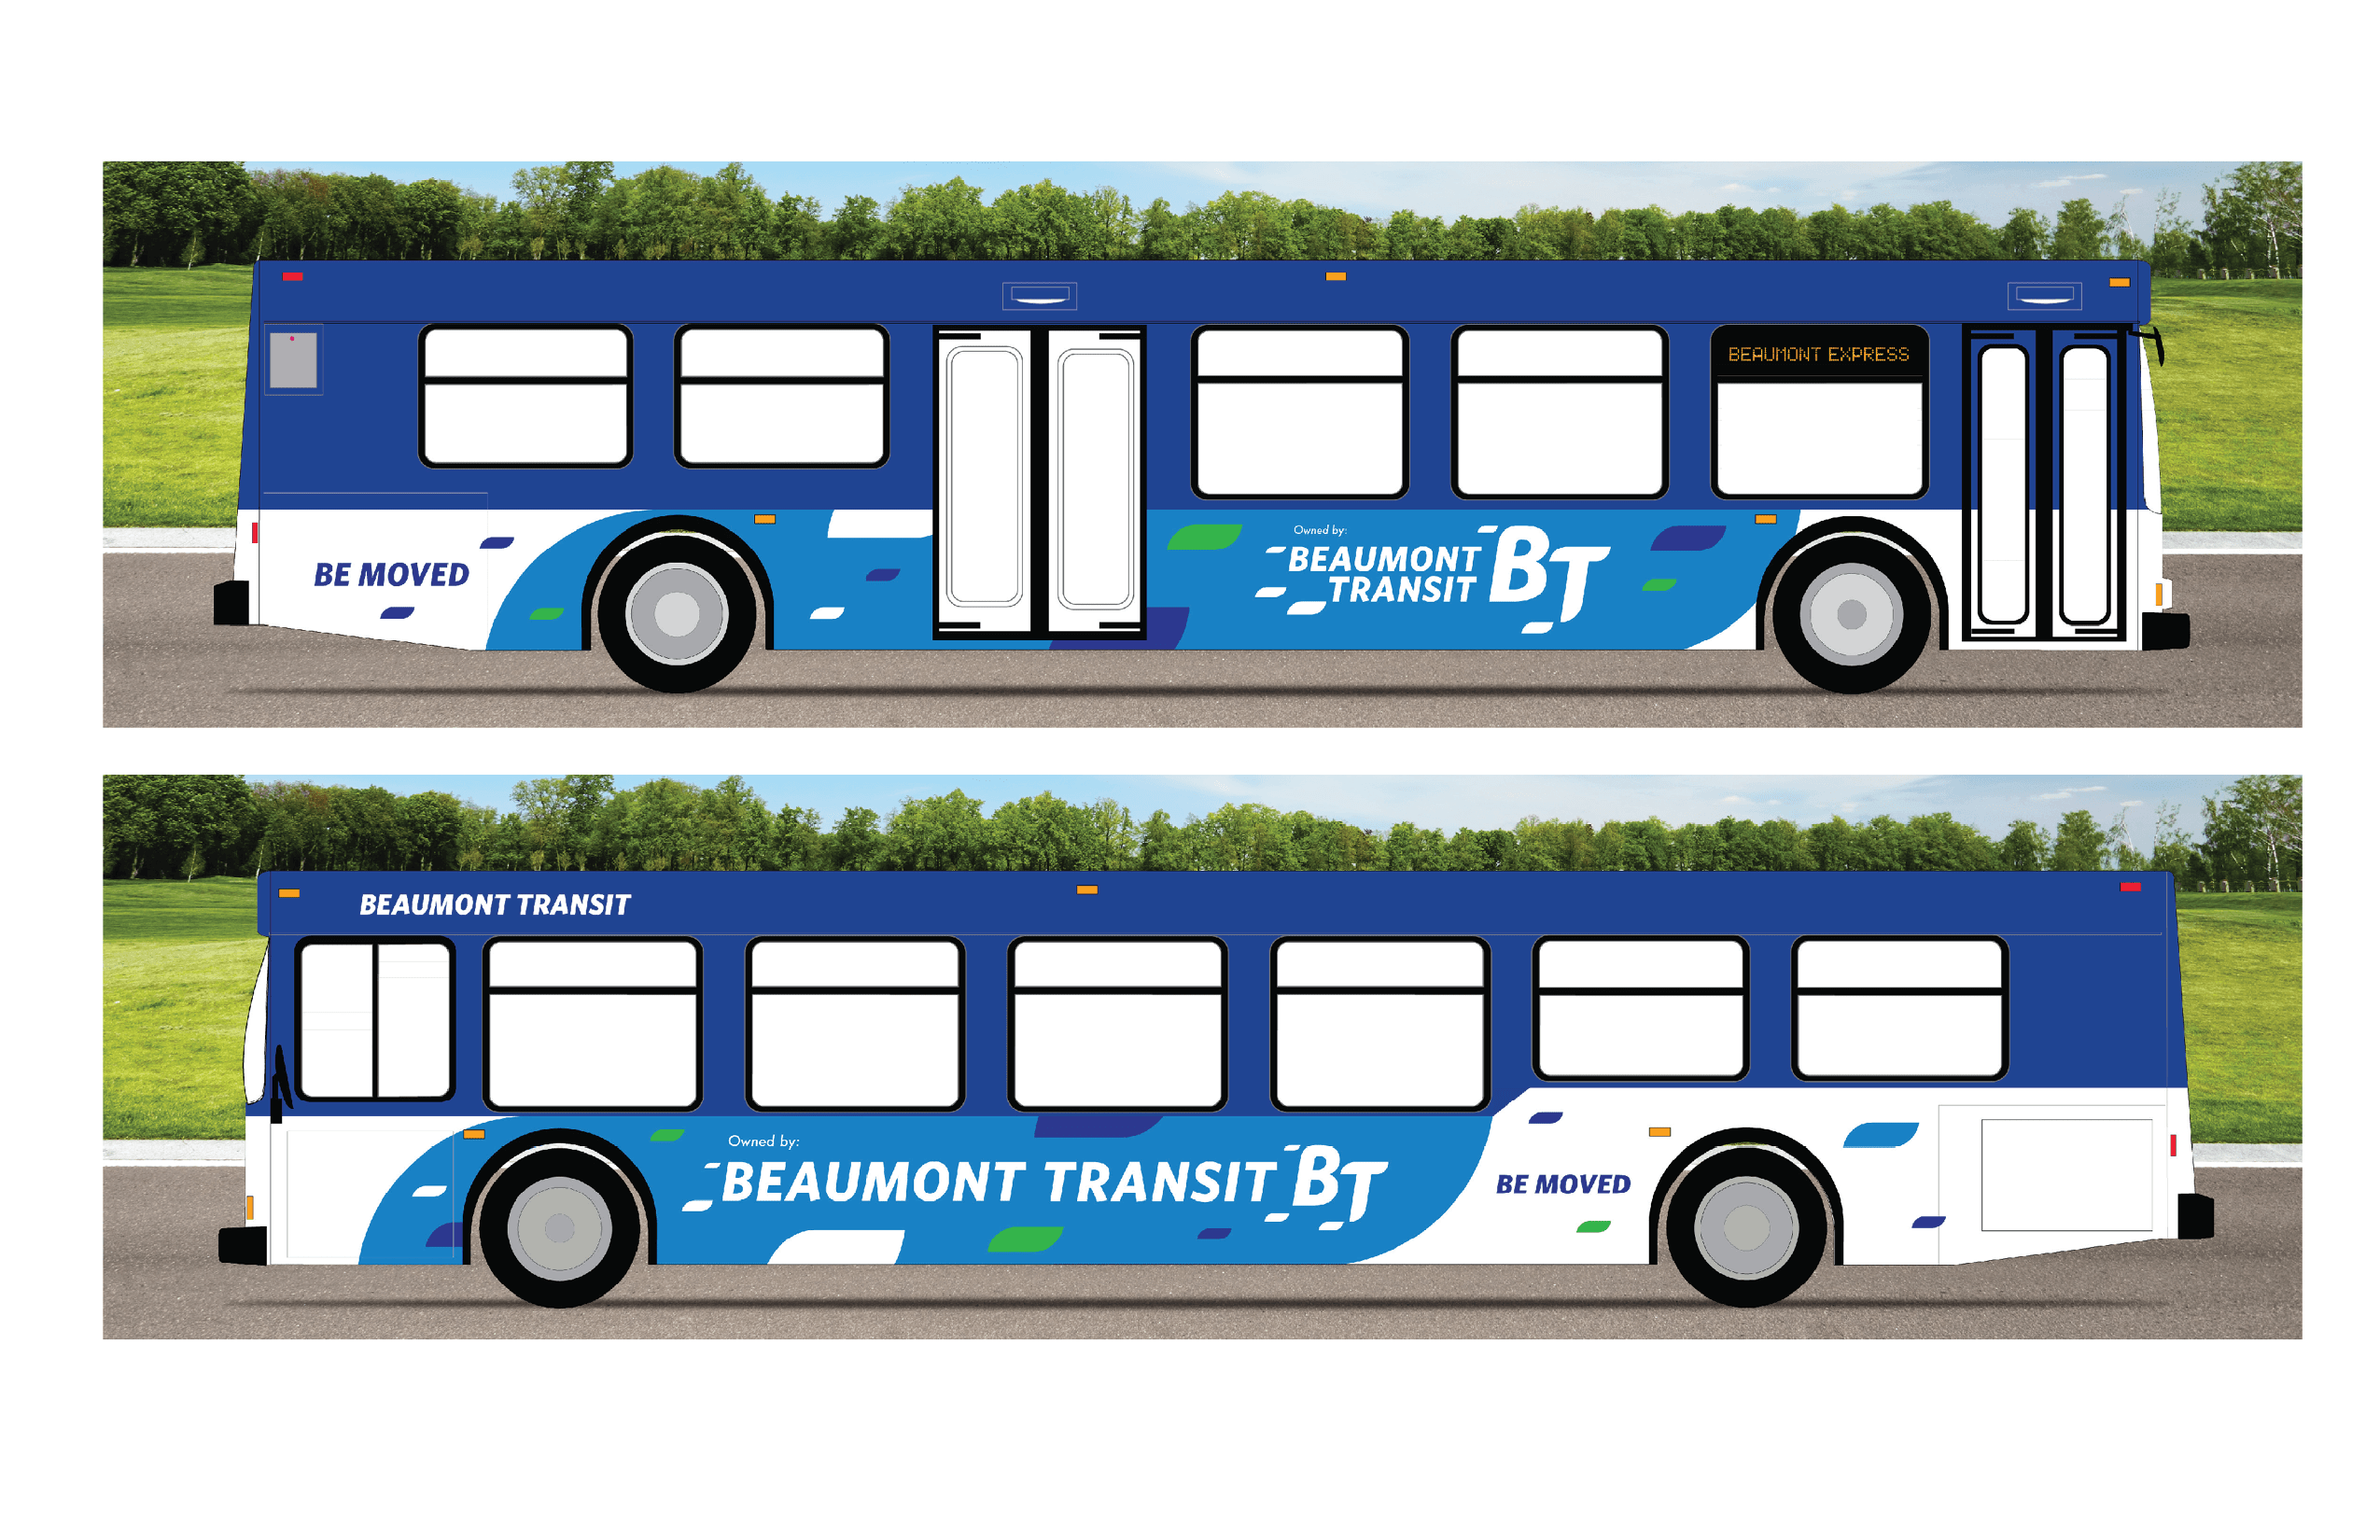 Beaumont Transit Bus rendering